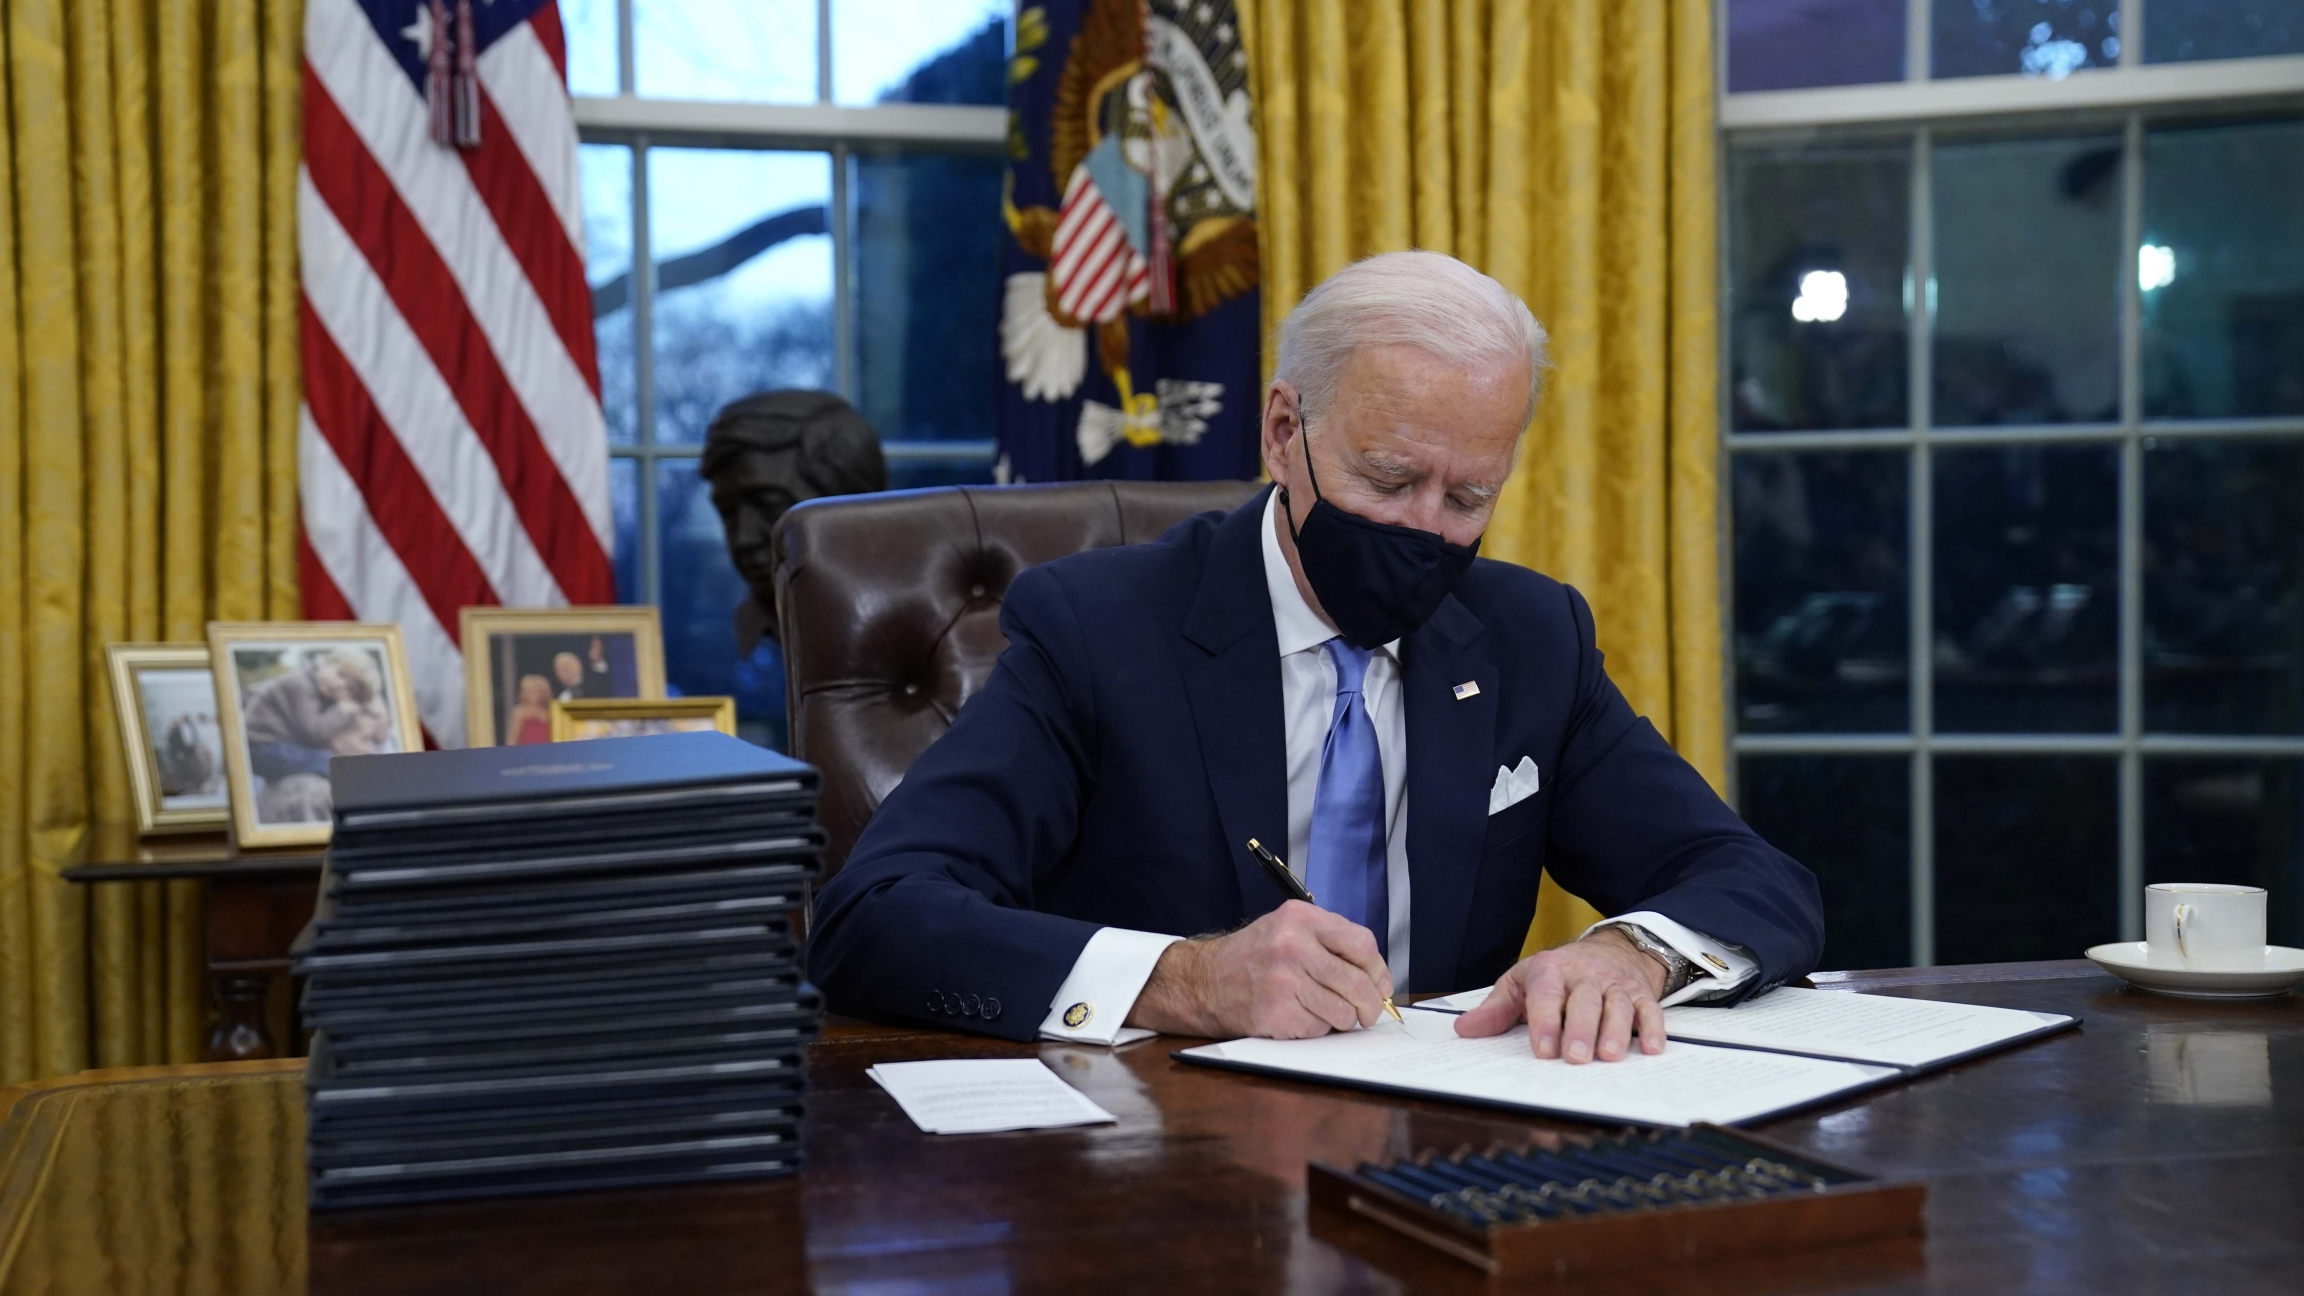 President Joe Biden signs his first executive order in the Oval Office of the White House on Jan. 20, 2021, in Washington, DC.